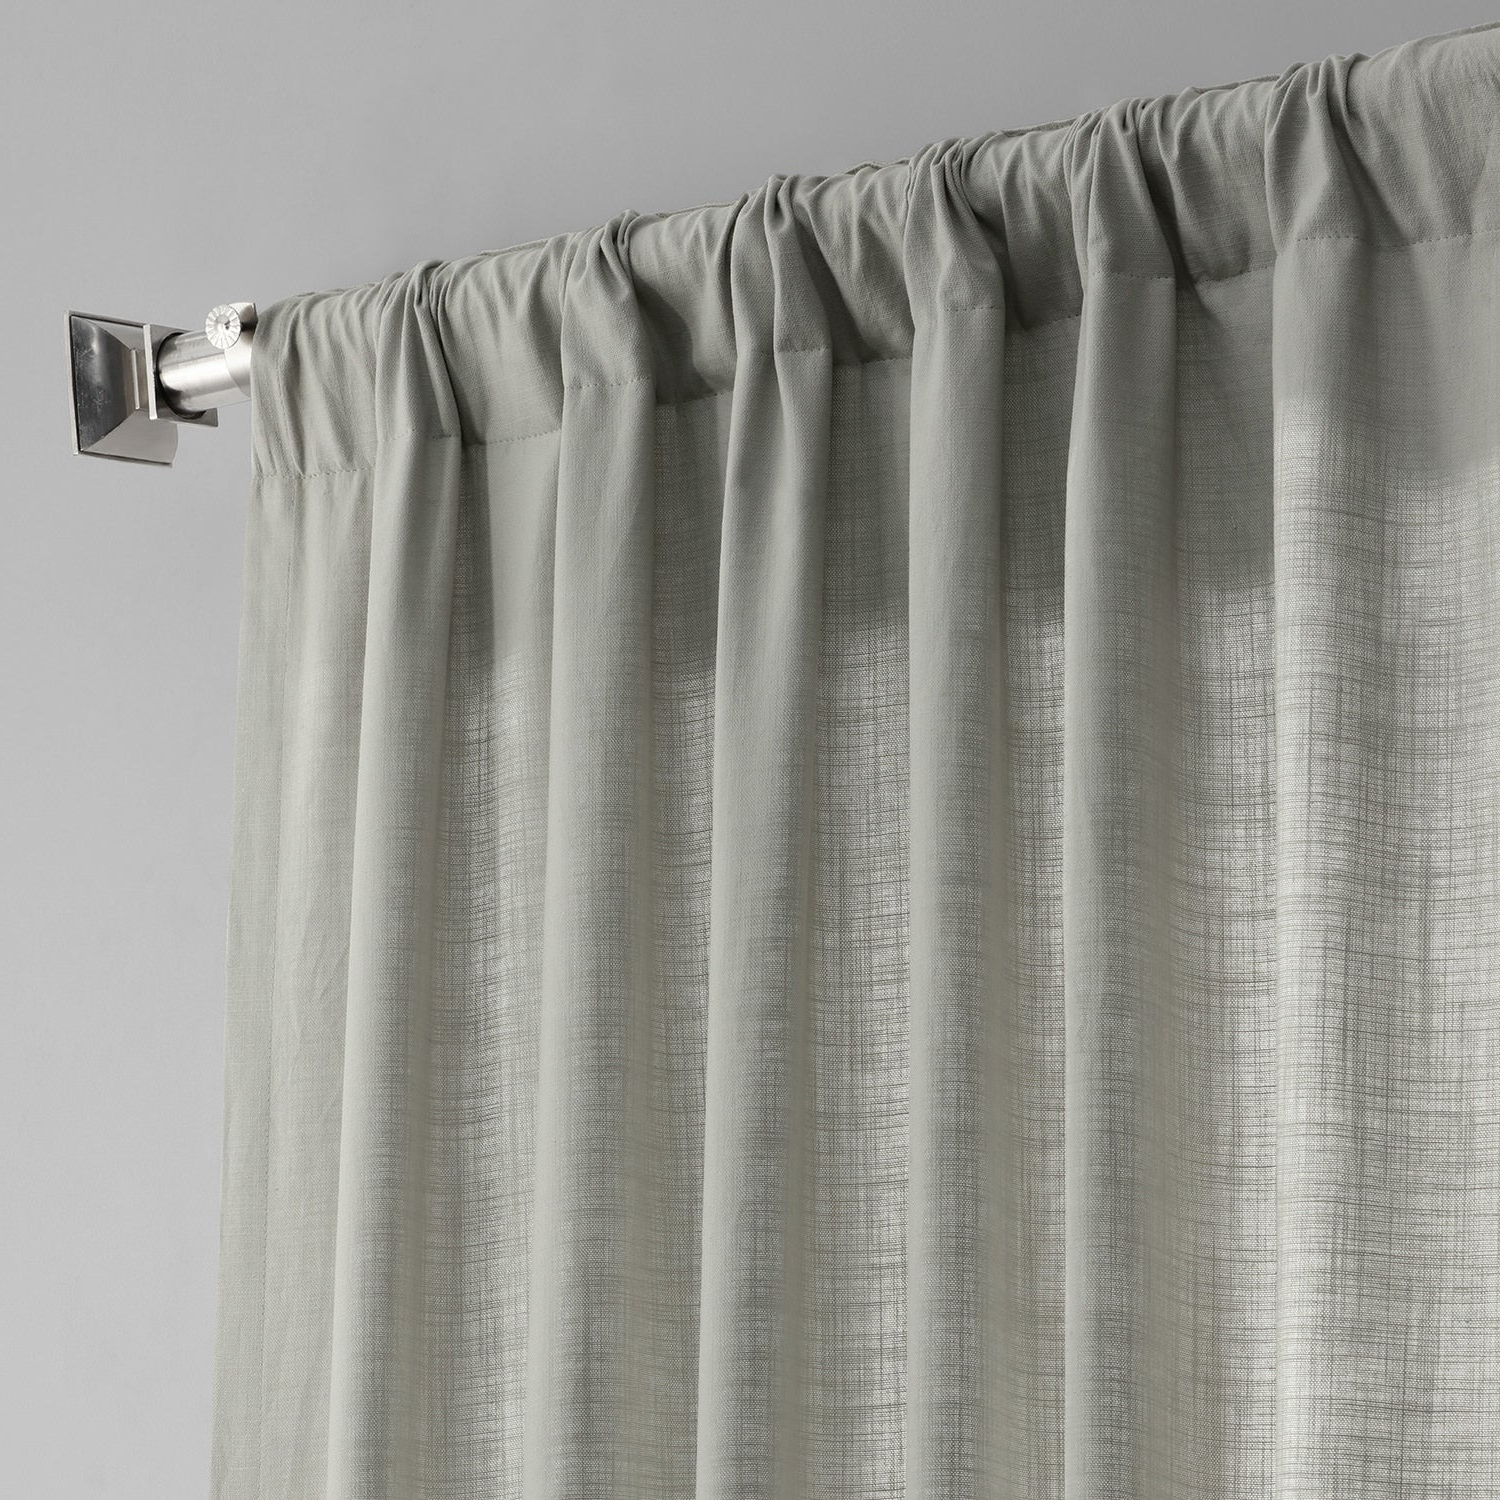 Solid Country Cotton Linen Weave Curtain Panels With Regard To Favorite Exclusive Fabrics Solid Country Cotton Linen Weave Curtain Panel (View 8 of 20)